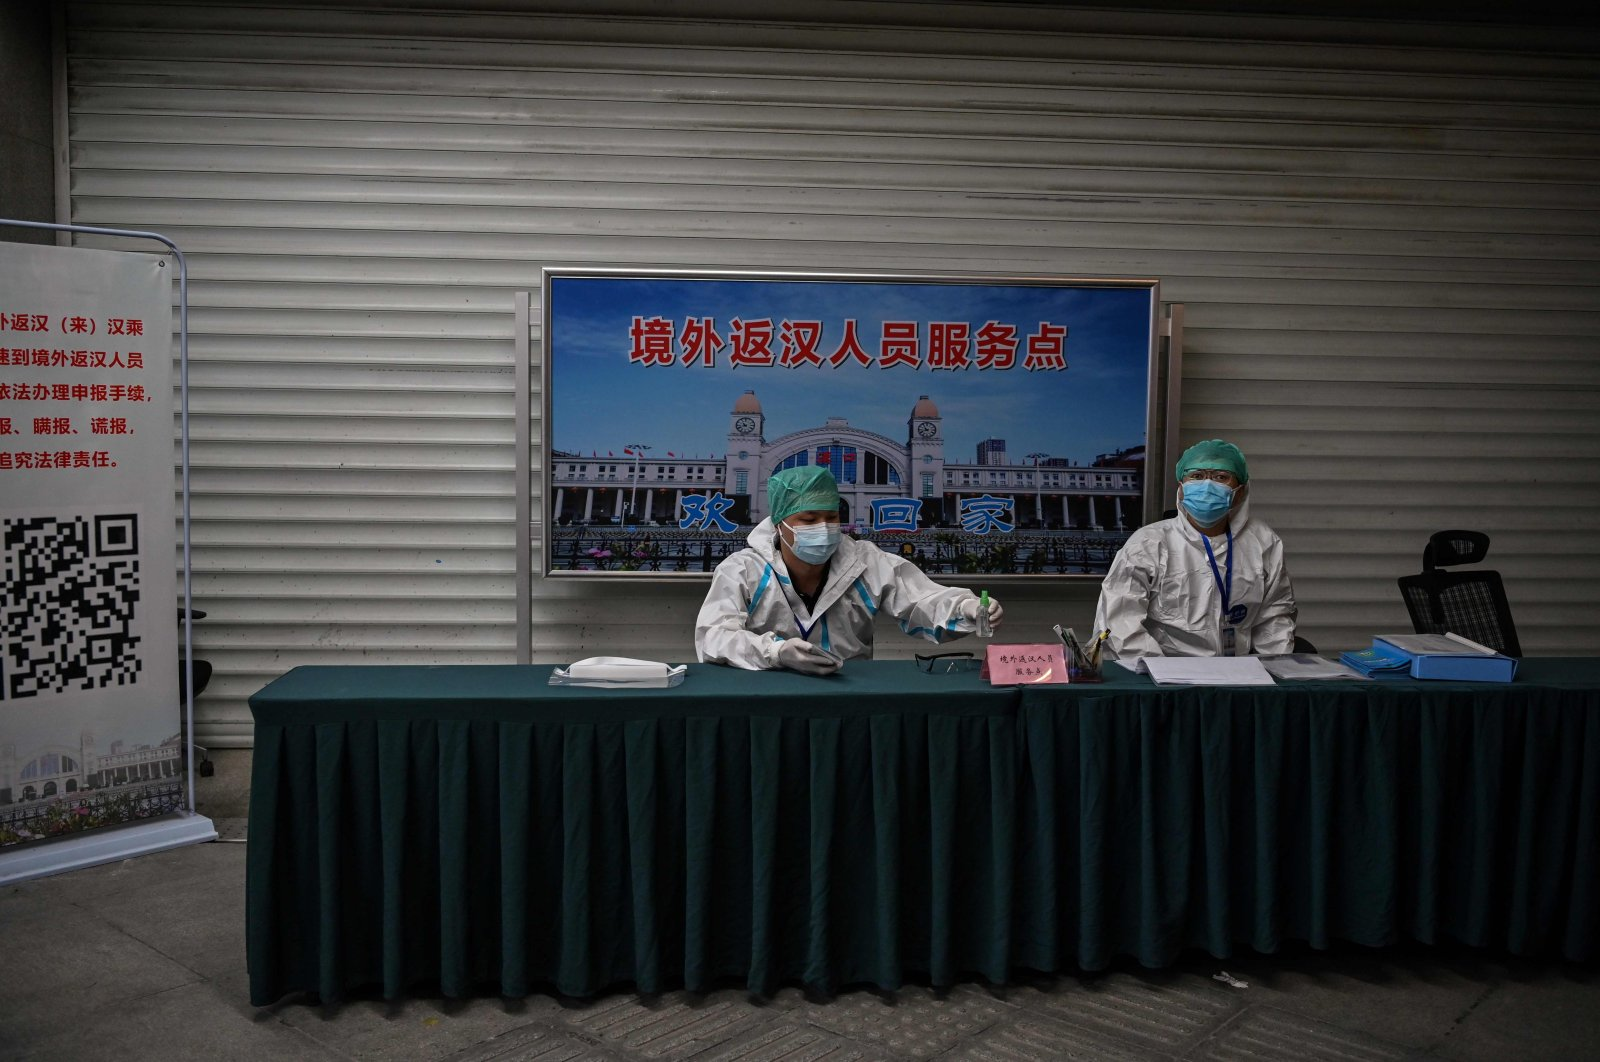 Employees wearing protective gear work at Hankou railway station, Wuhan, China, May 12, 2020. (AFP Photo)